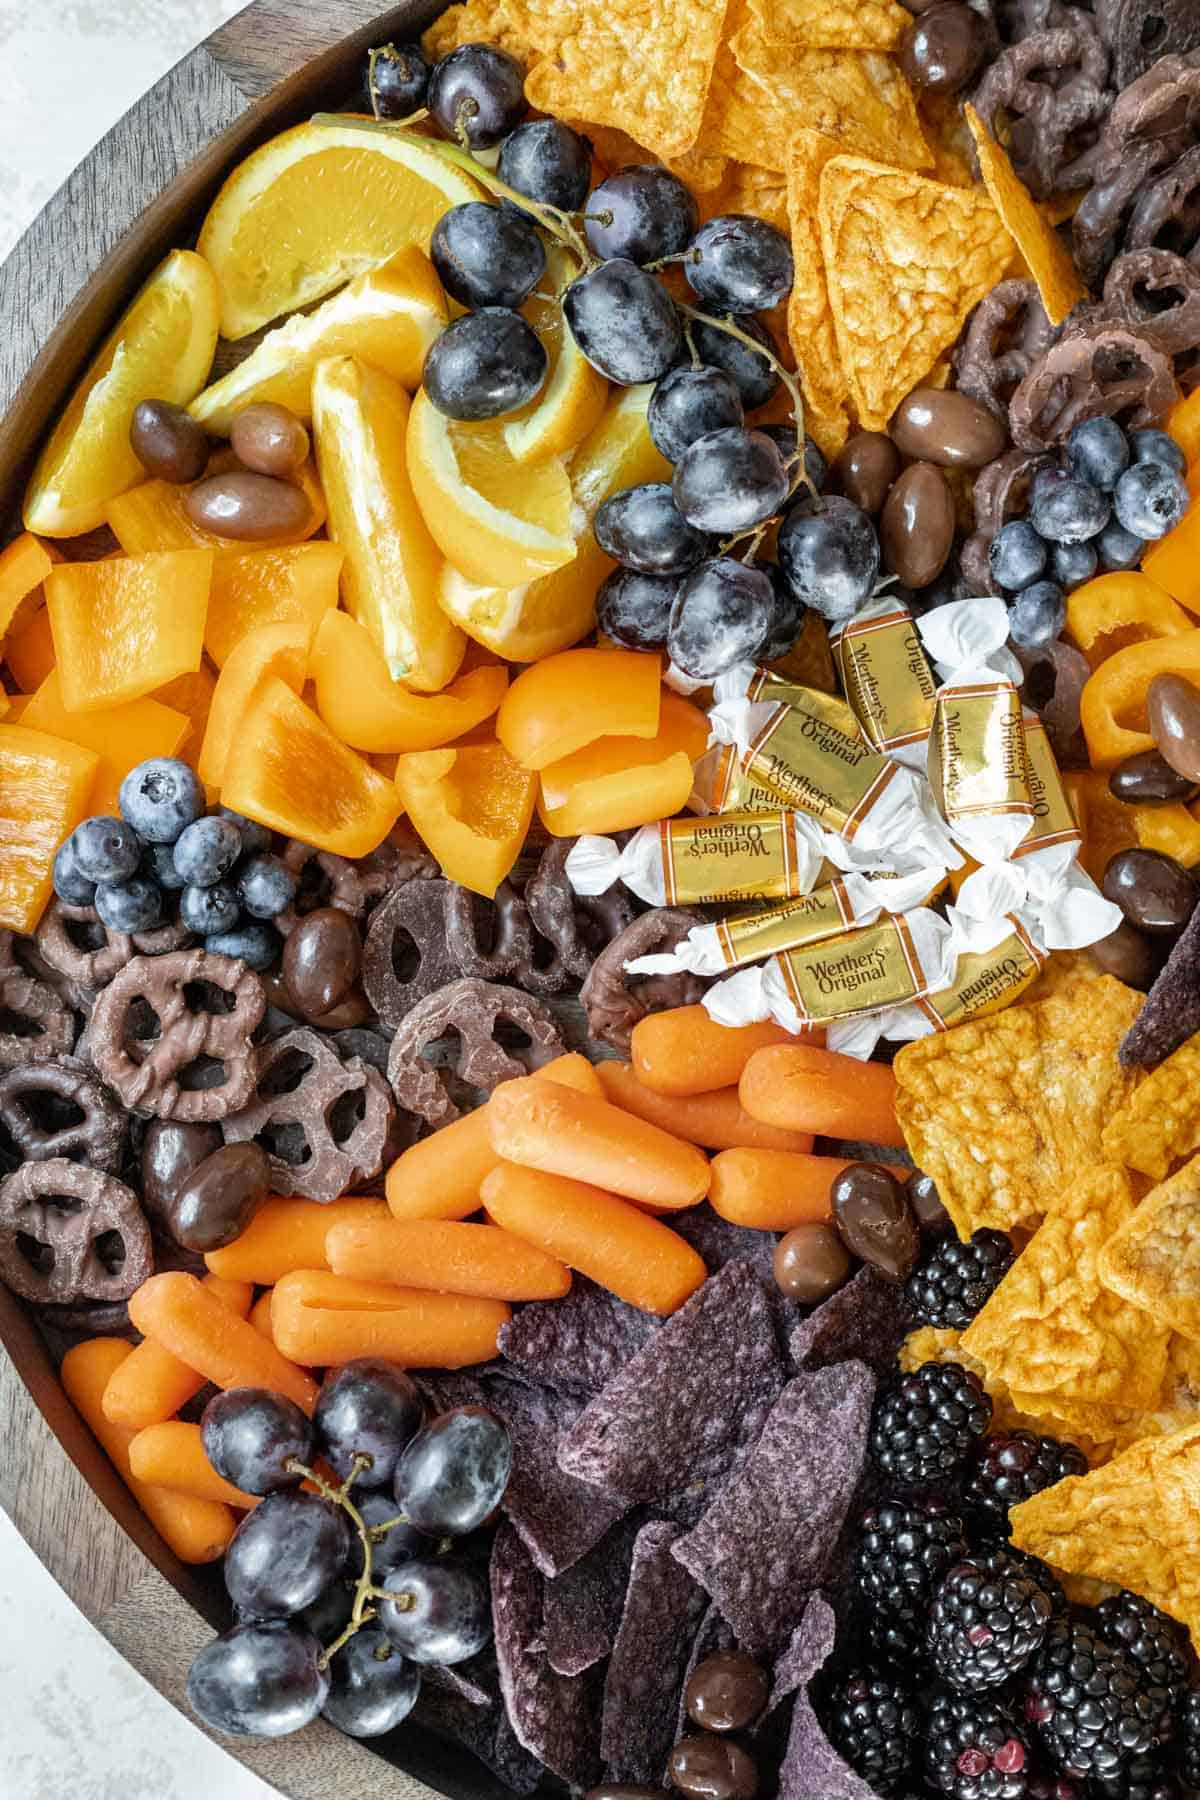 Spooky Halloween snack board with orange slices, caramels, carrots, nacho cheese chips, blue tortilla chips, chocolate pretzels, grapes, and blueberries.